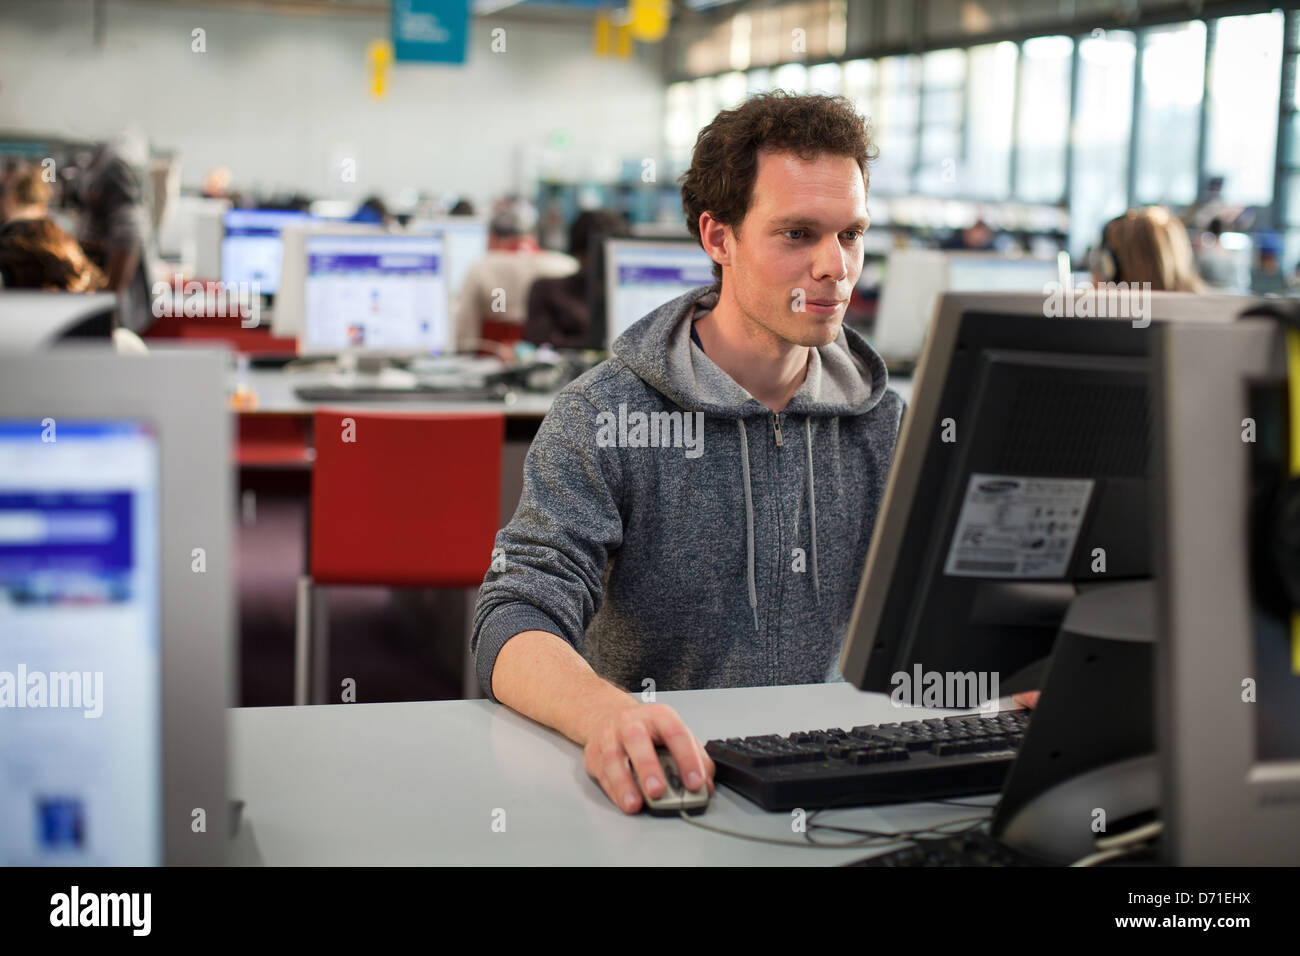 student in the computer classroom - Stock Image